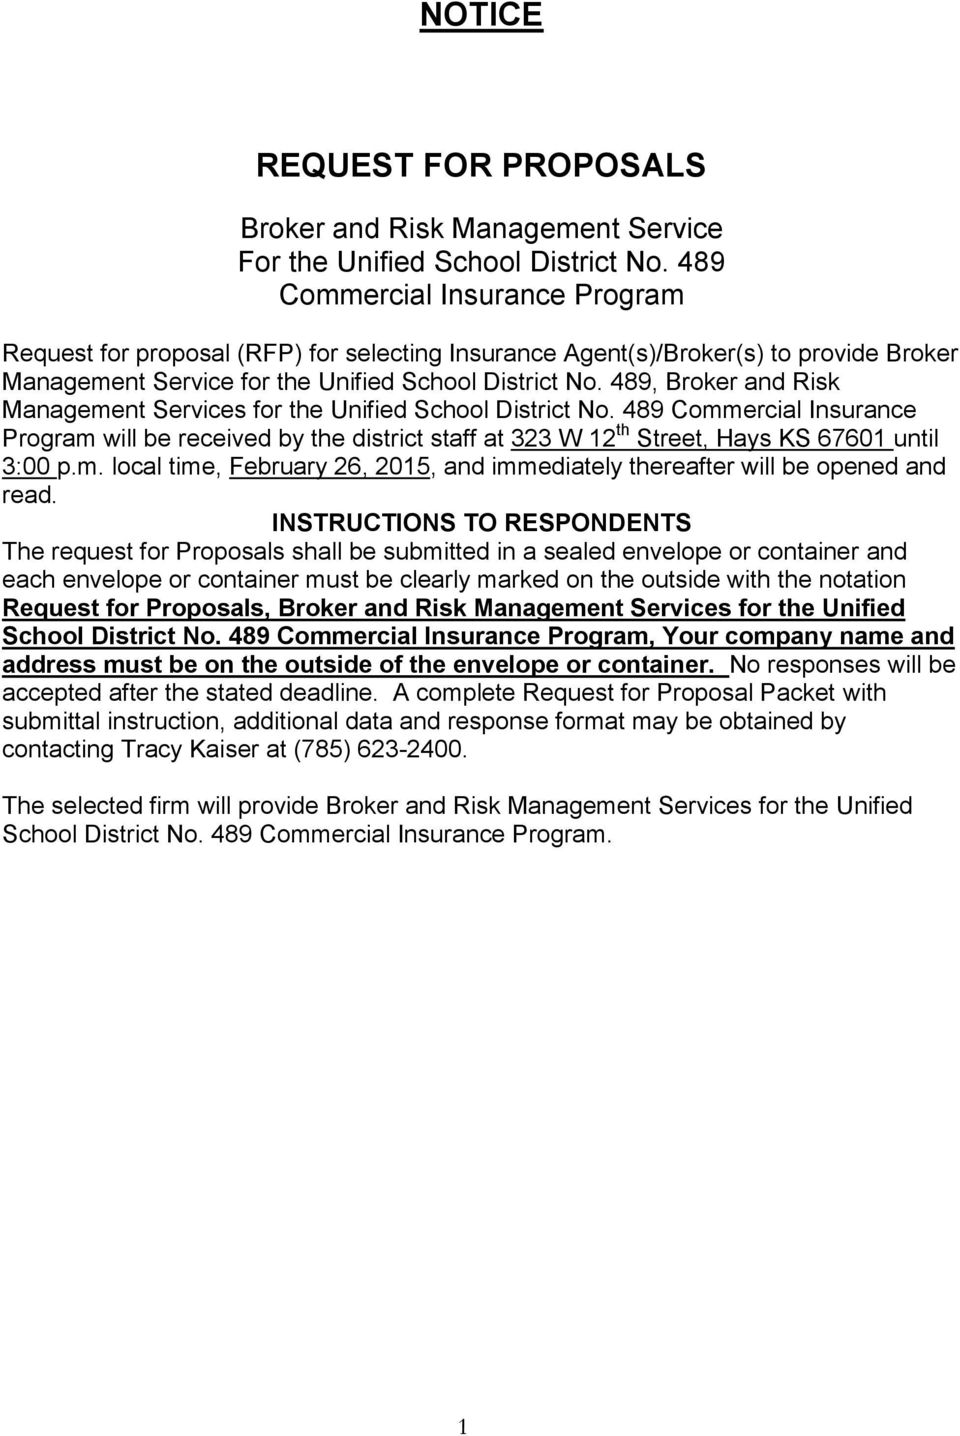 489, Broker and Risk Management Services for the Unified School District No. 489 Commercial Insurance Program will be received by the district staff at 323 W 12 th Street, Hays KS 67601 until 3:00 p.